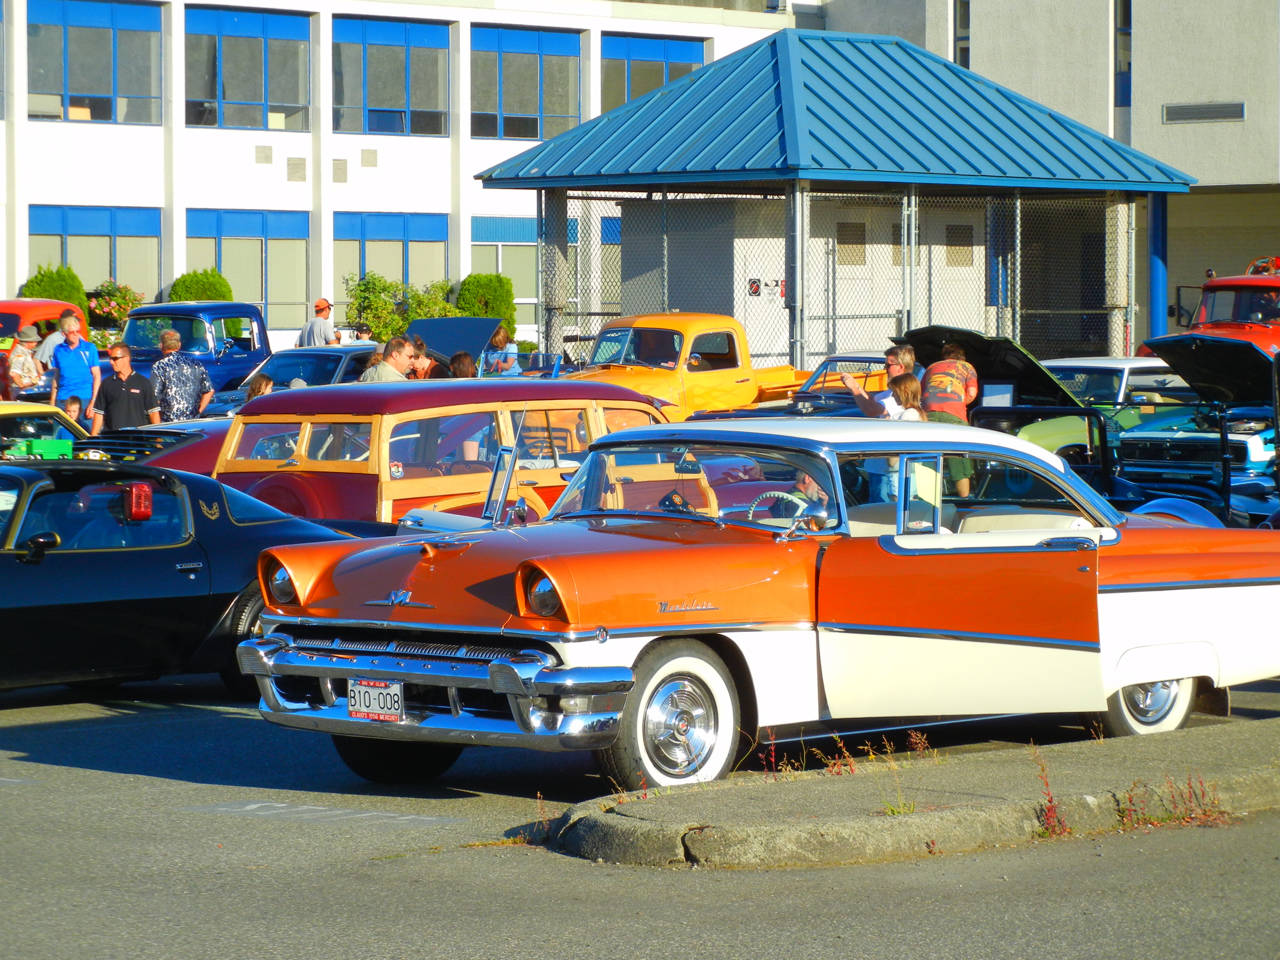 The 12th Annual Aldergrove Fair Car Show is happening Friday, July 16. (Special to The Star)